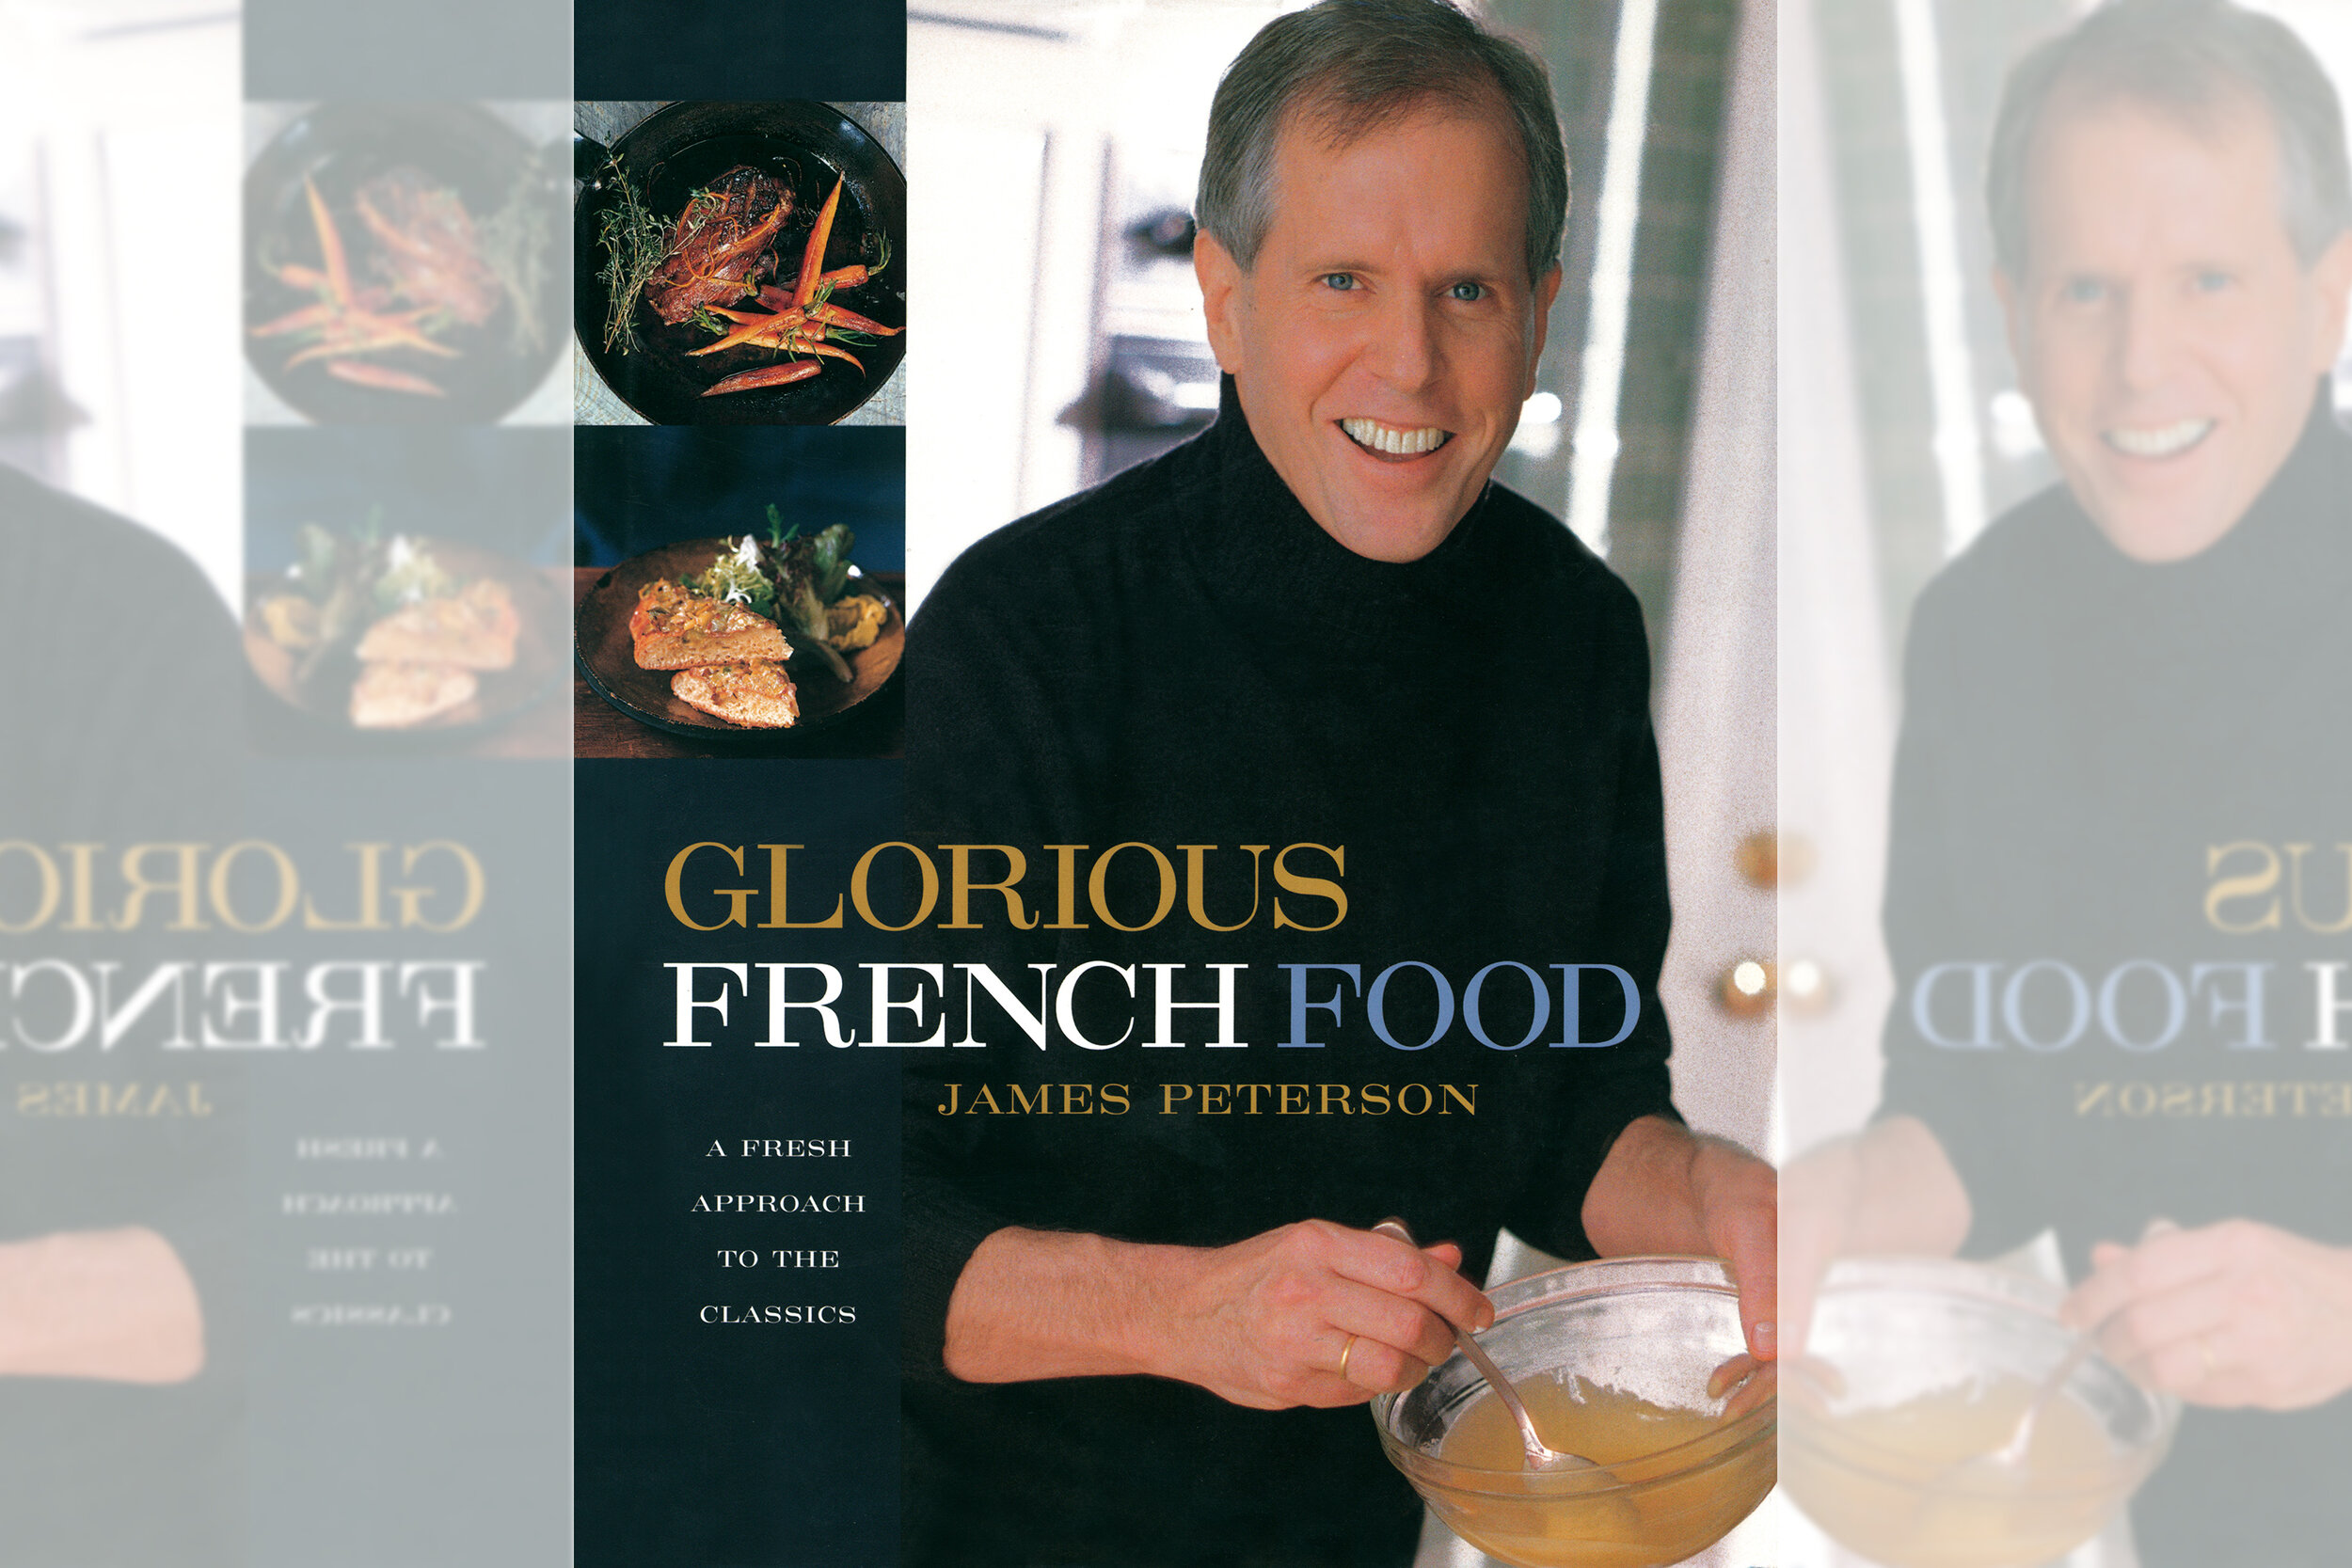 Behind the Cookbook: James Peterson on Glorious French Food